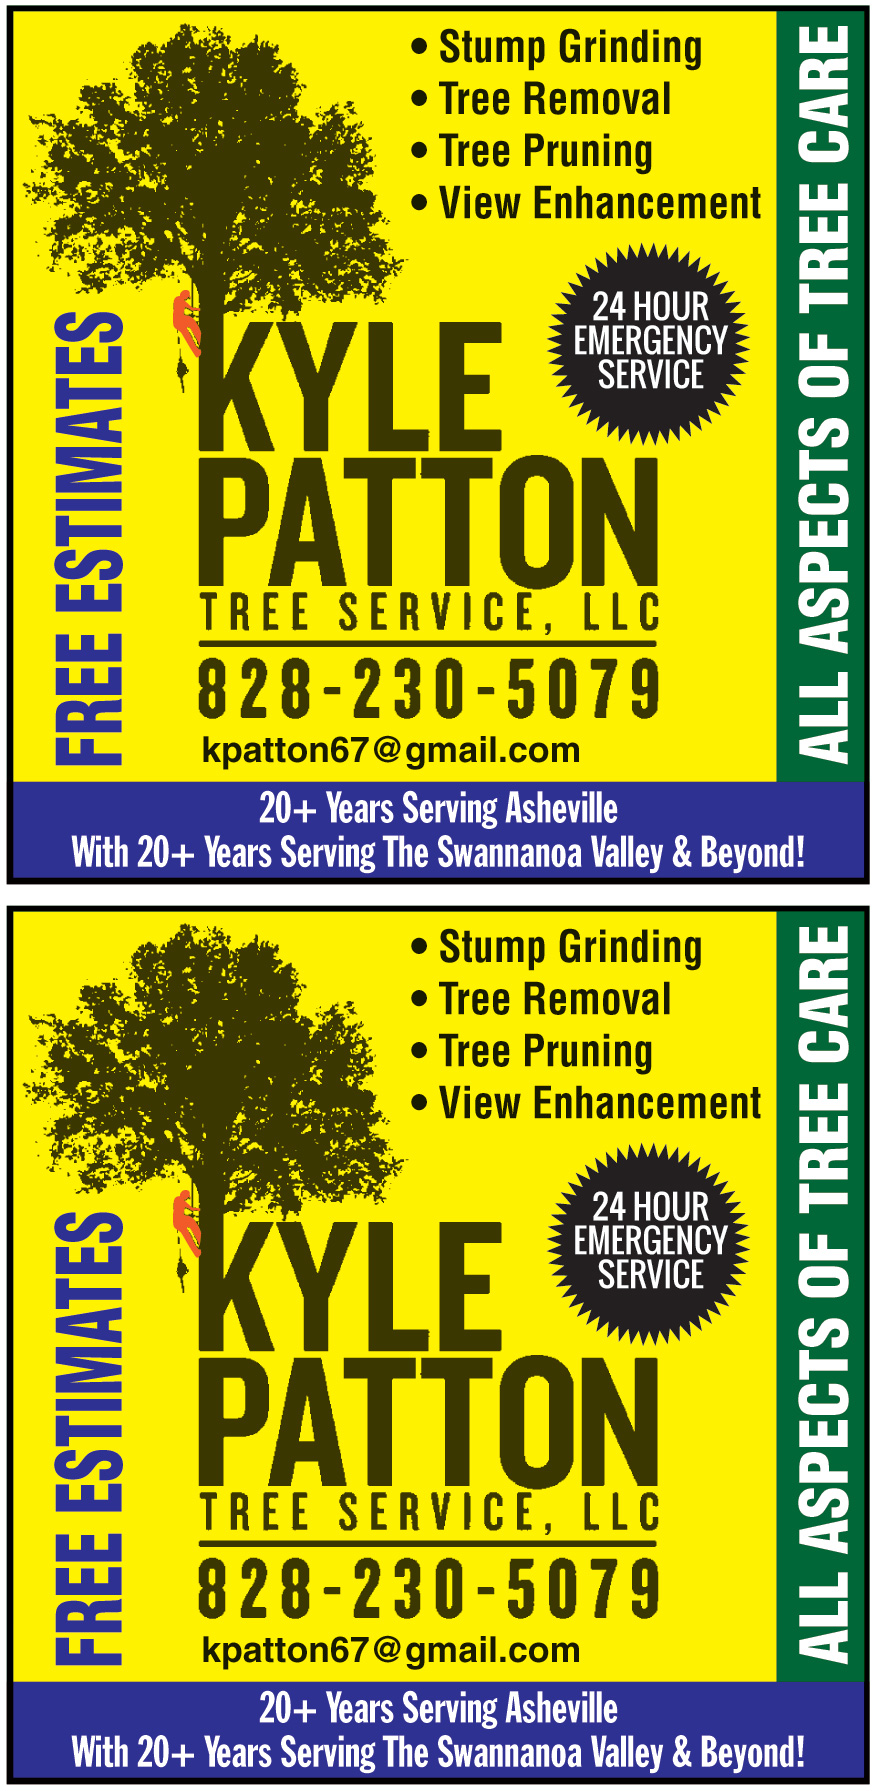 KYLE PATTON TREE SERVICE